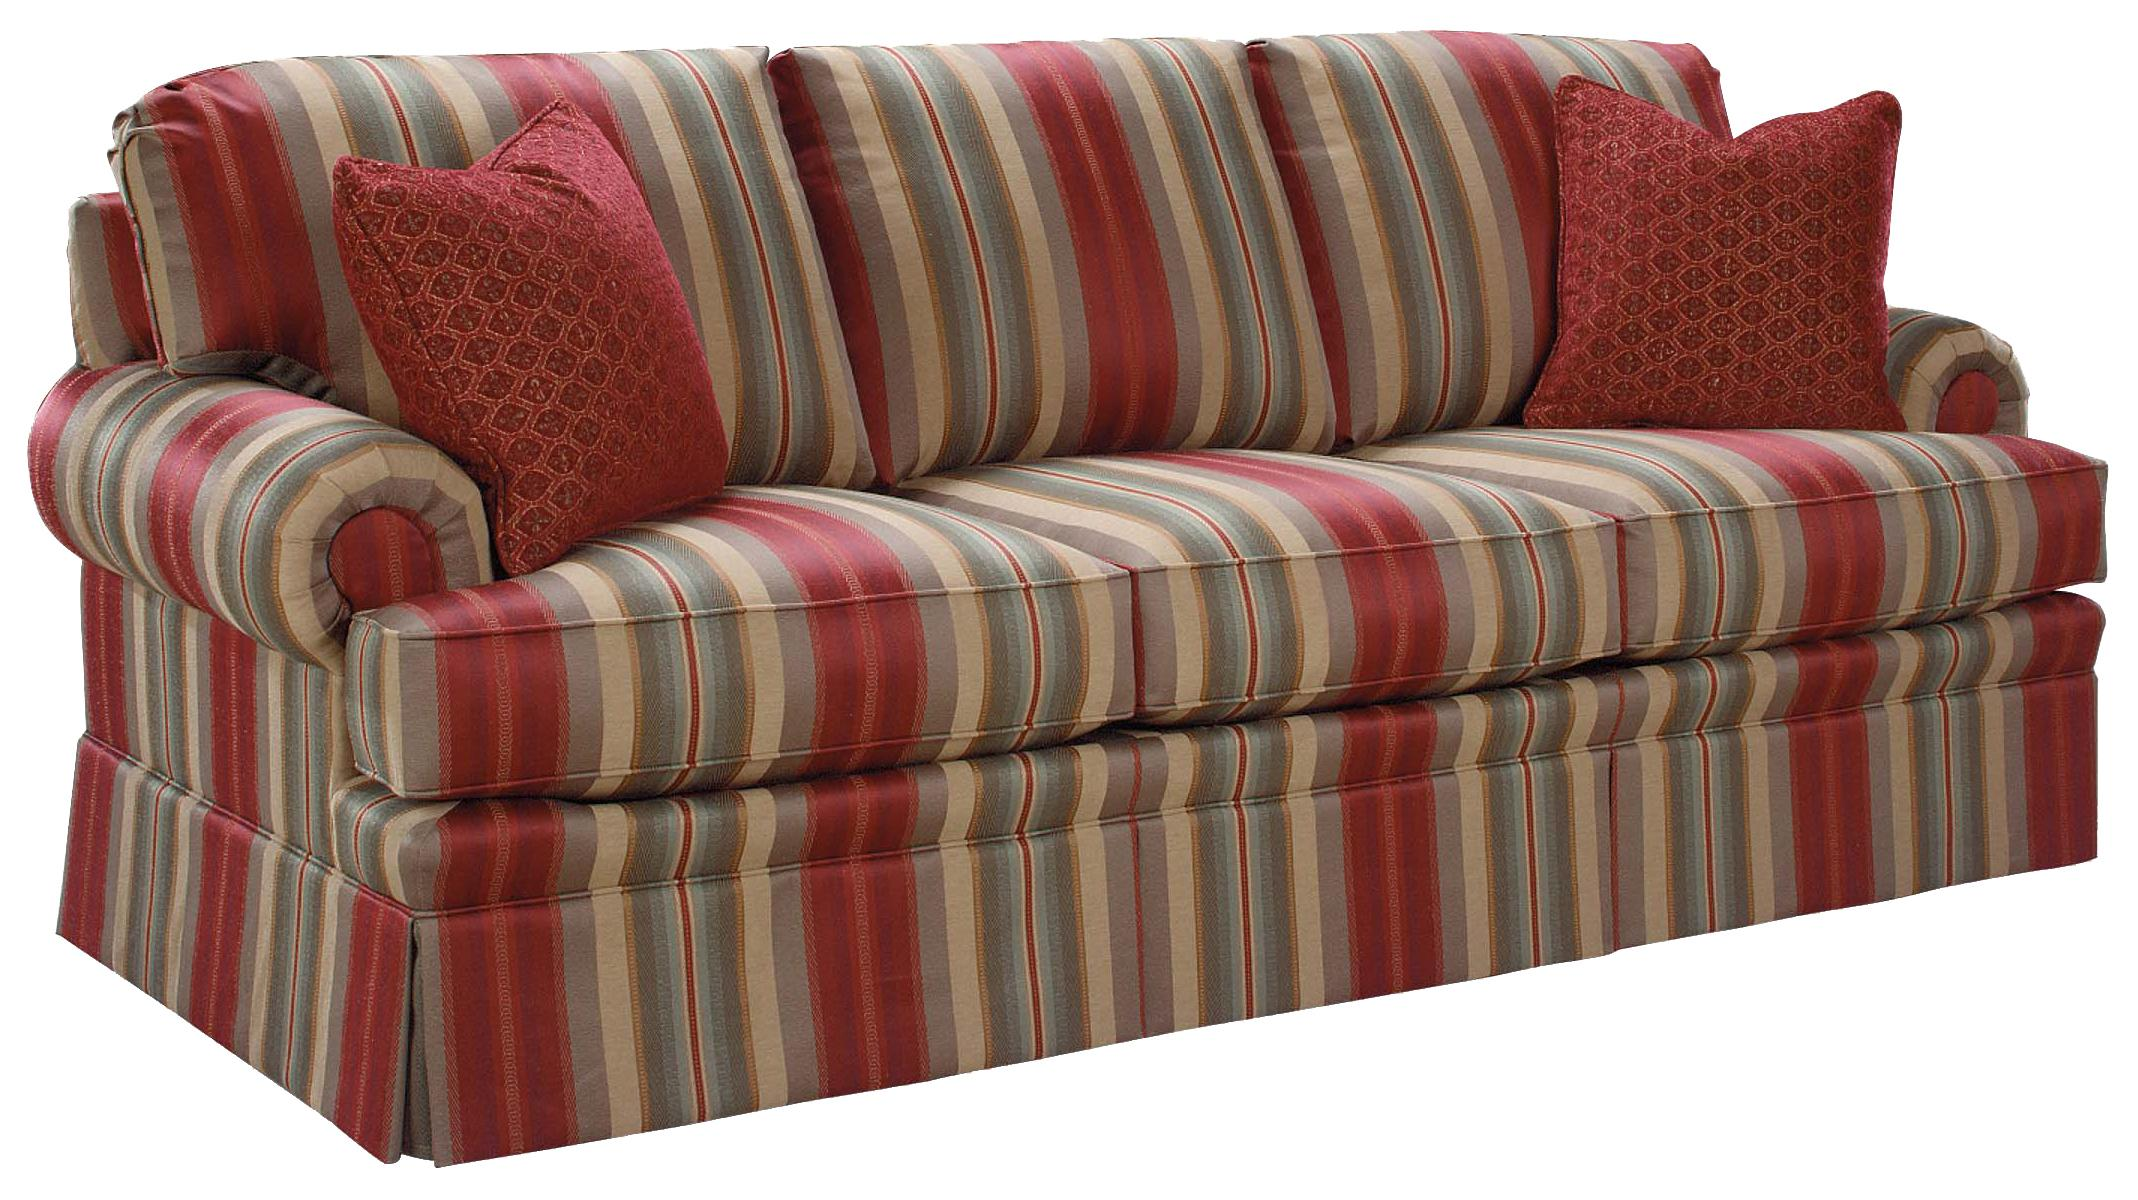 3720 Accent Sofa by Fairfield at Lindy's Furniture Company